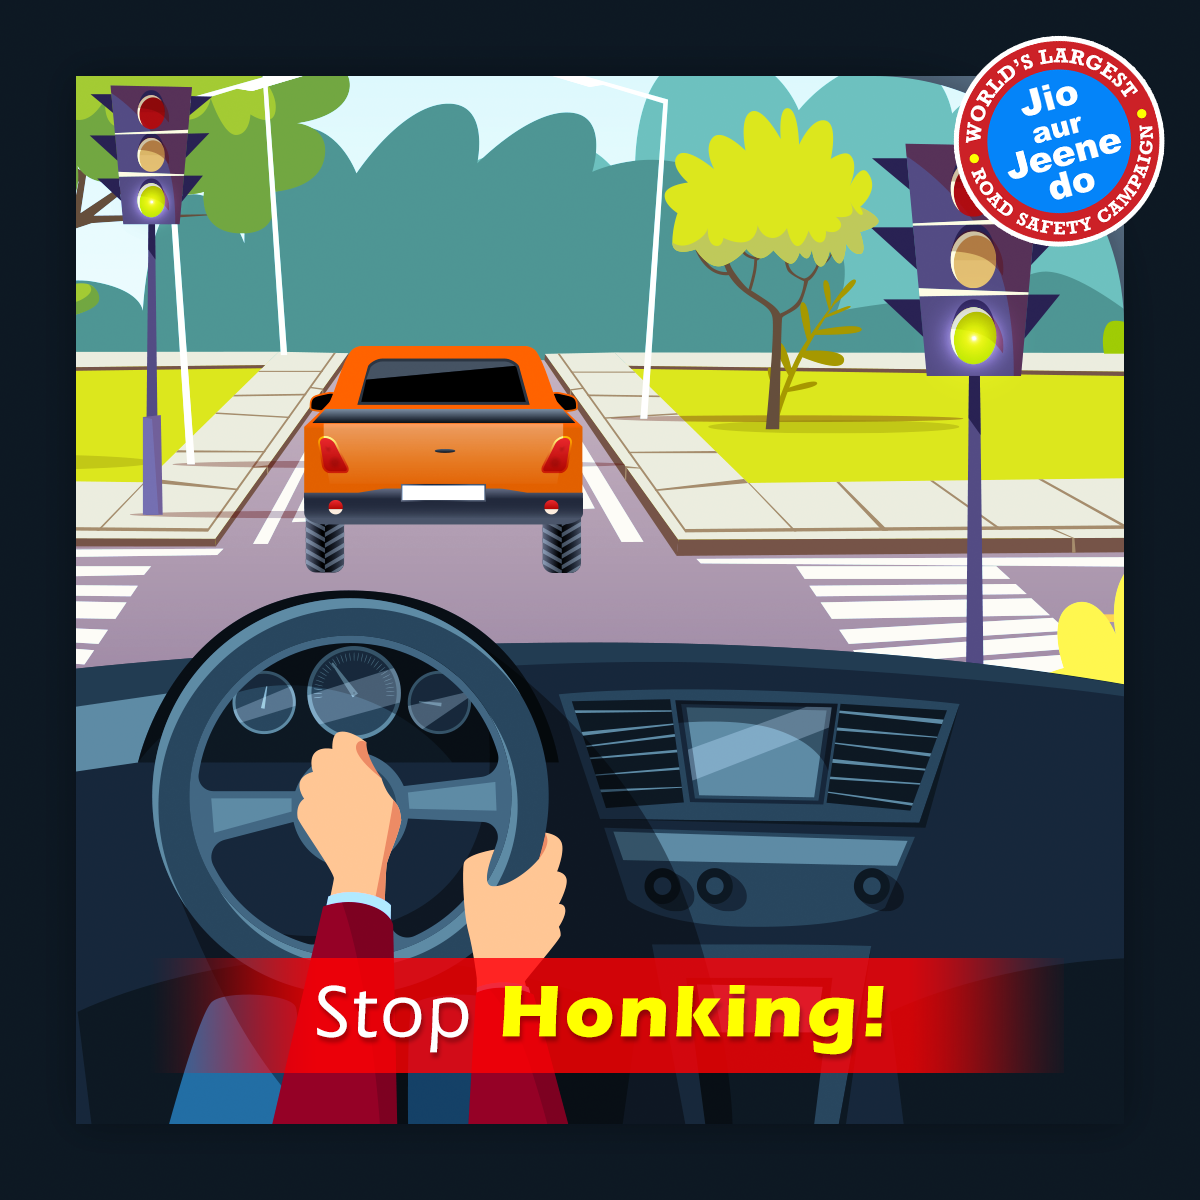 Even vehicles creating unnecessary noise while driving are